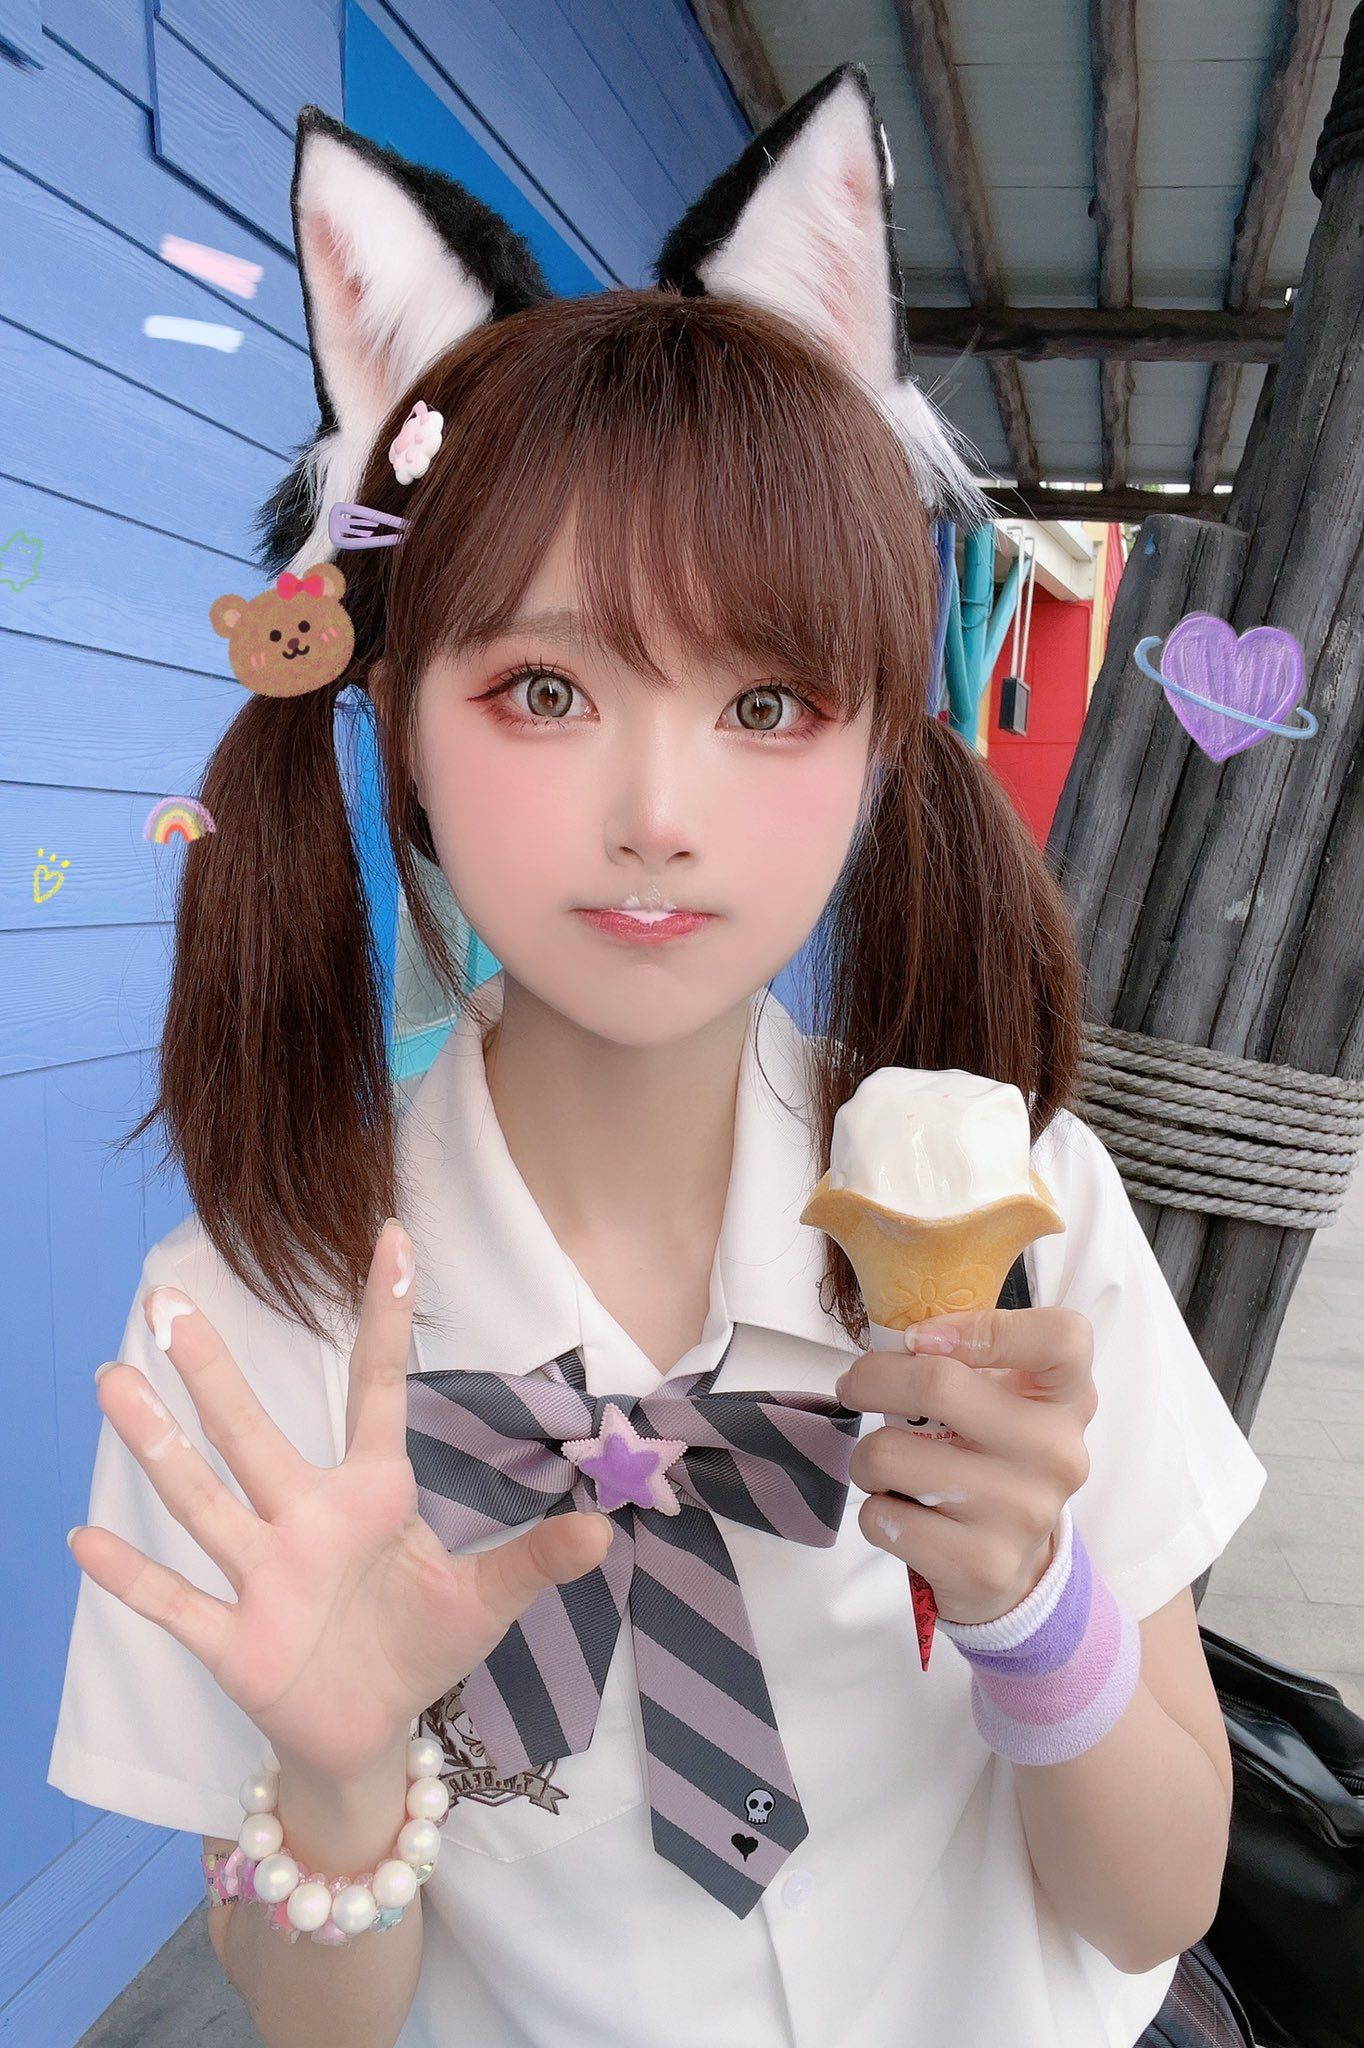 The saga of michael myers and laurie strode continues in the next thrilling chapter of the halloween series. Do You Want To Eat Ice Cream? SeeU Cosplay in 2021 | Cute kawaii girl, Cute japanese girl, Cosplay